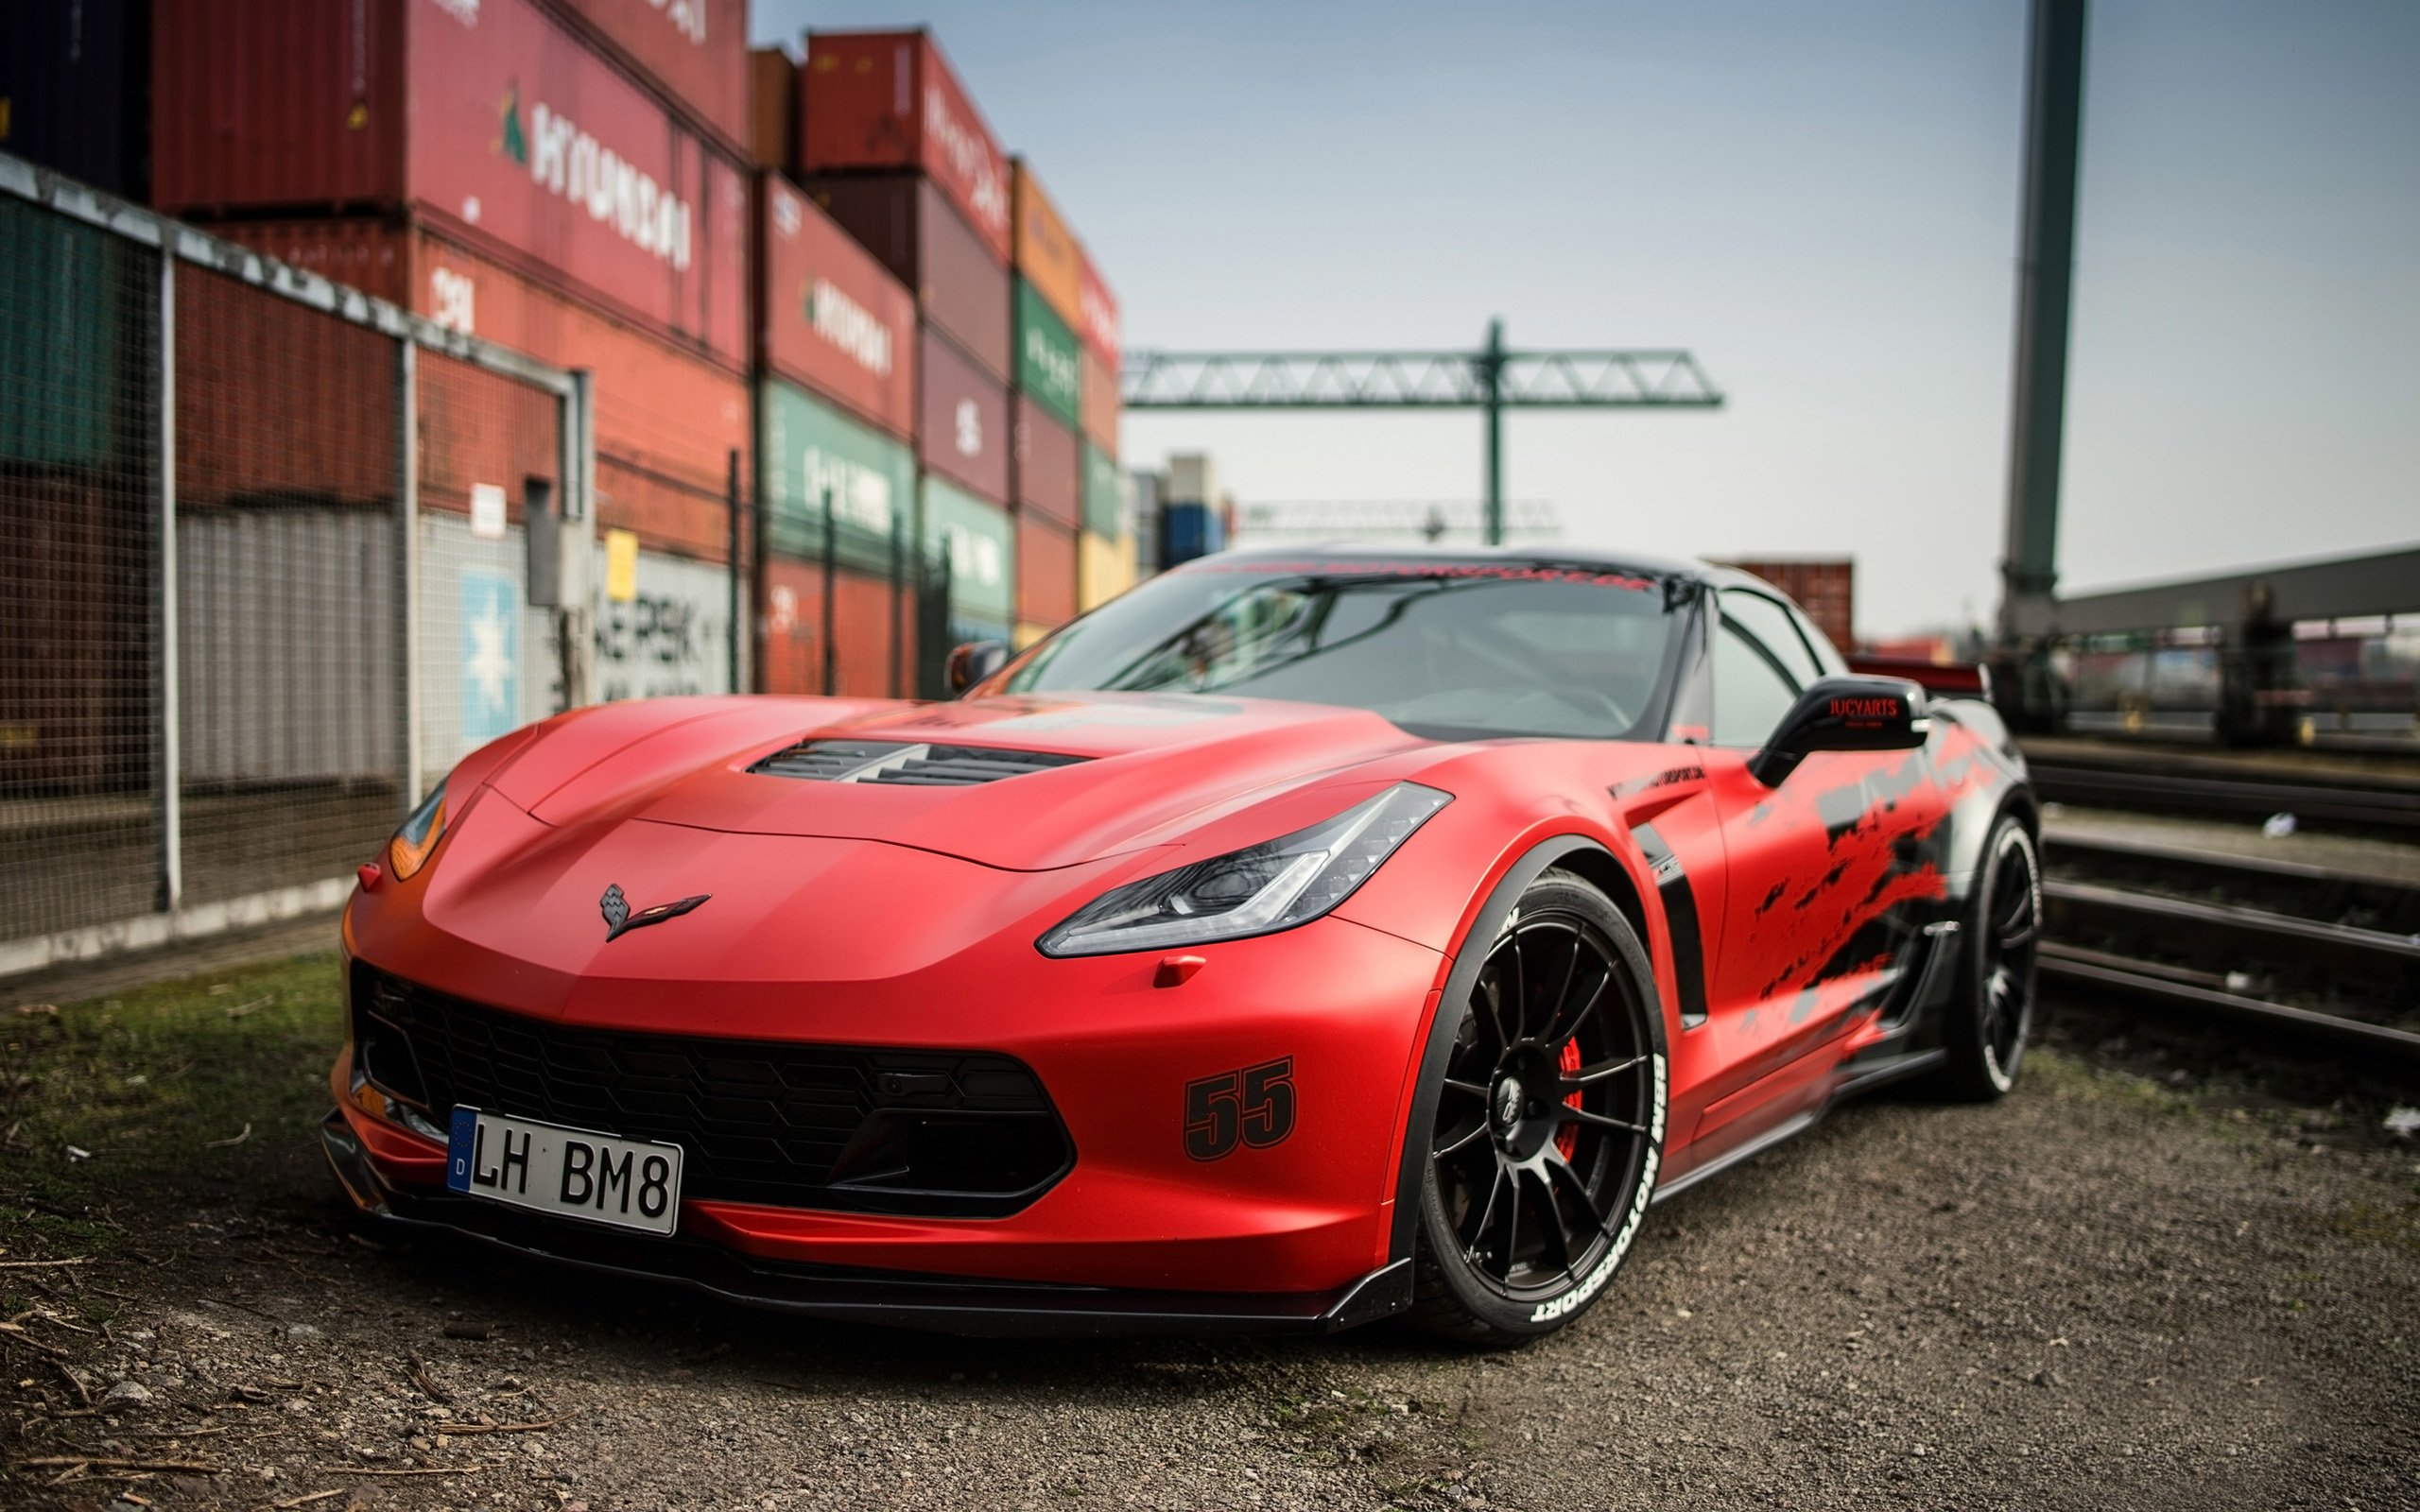 2016 BBM Motorsport Chevrolet Corvette C7 Z06 Wallpaper HD Car 2560x1600